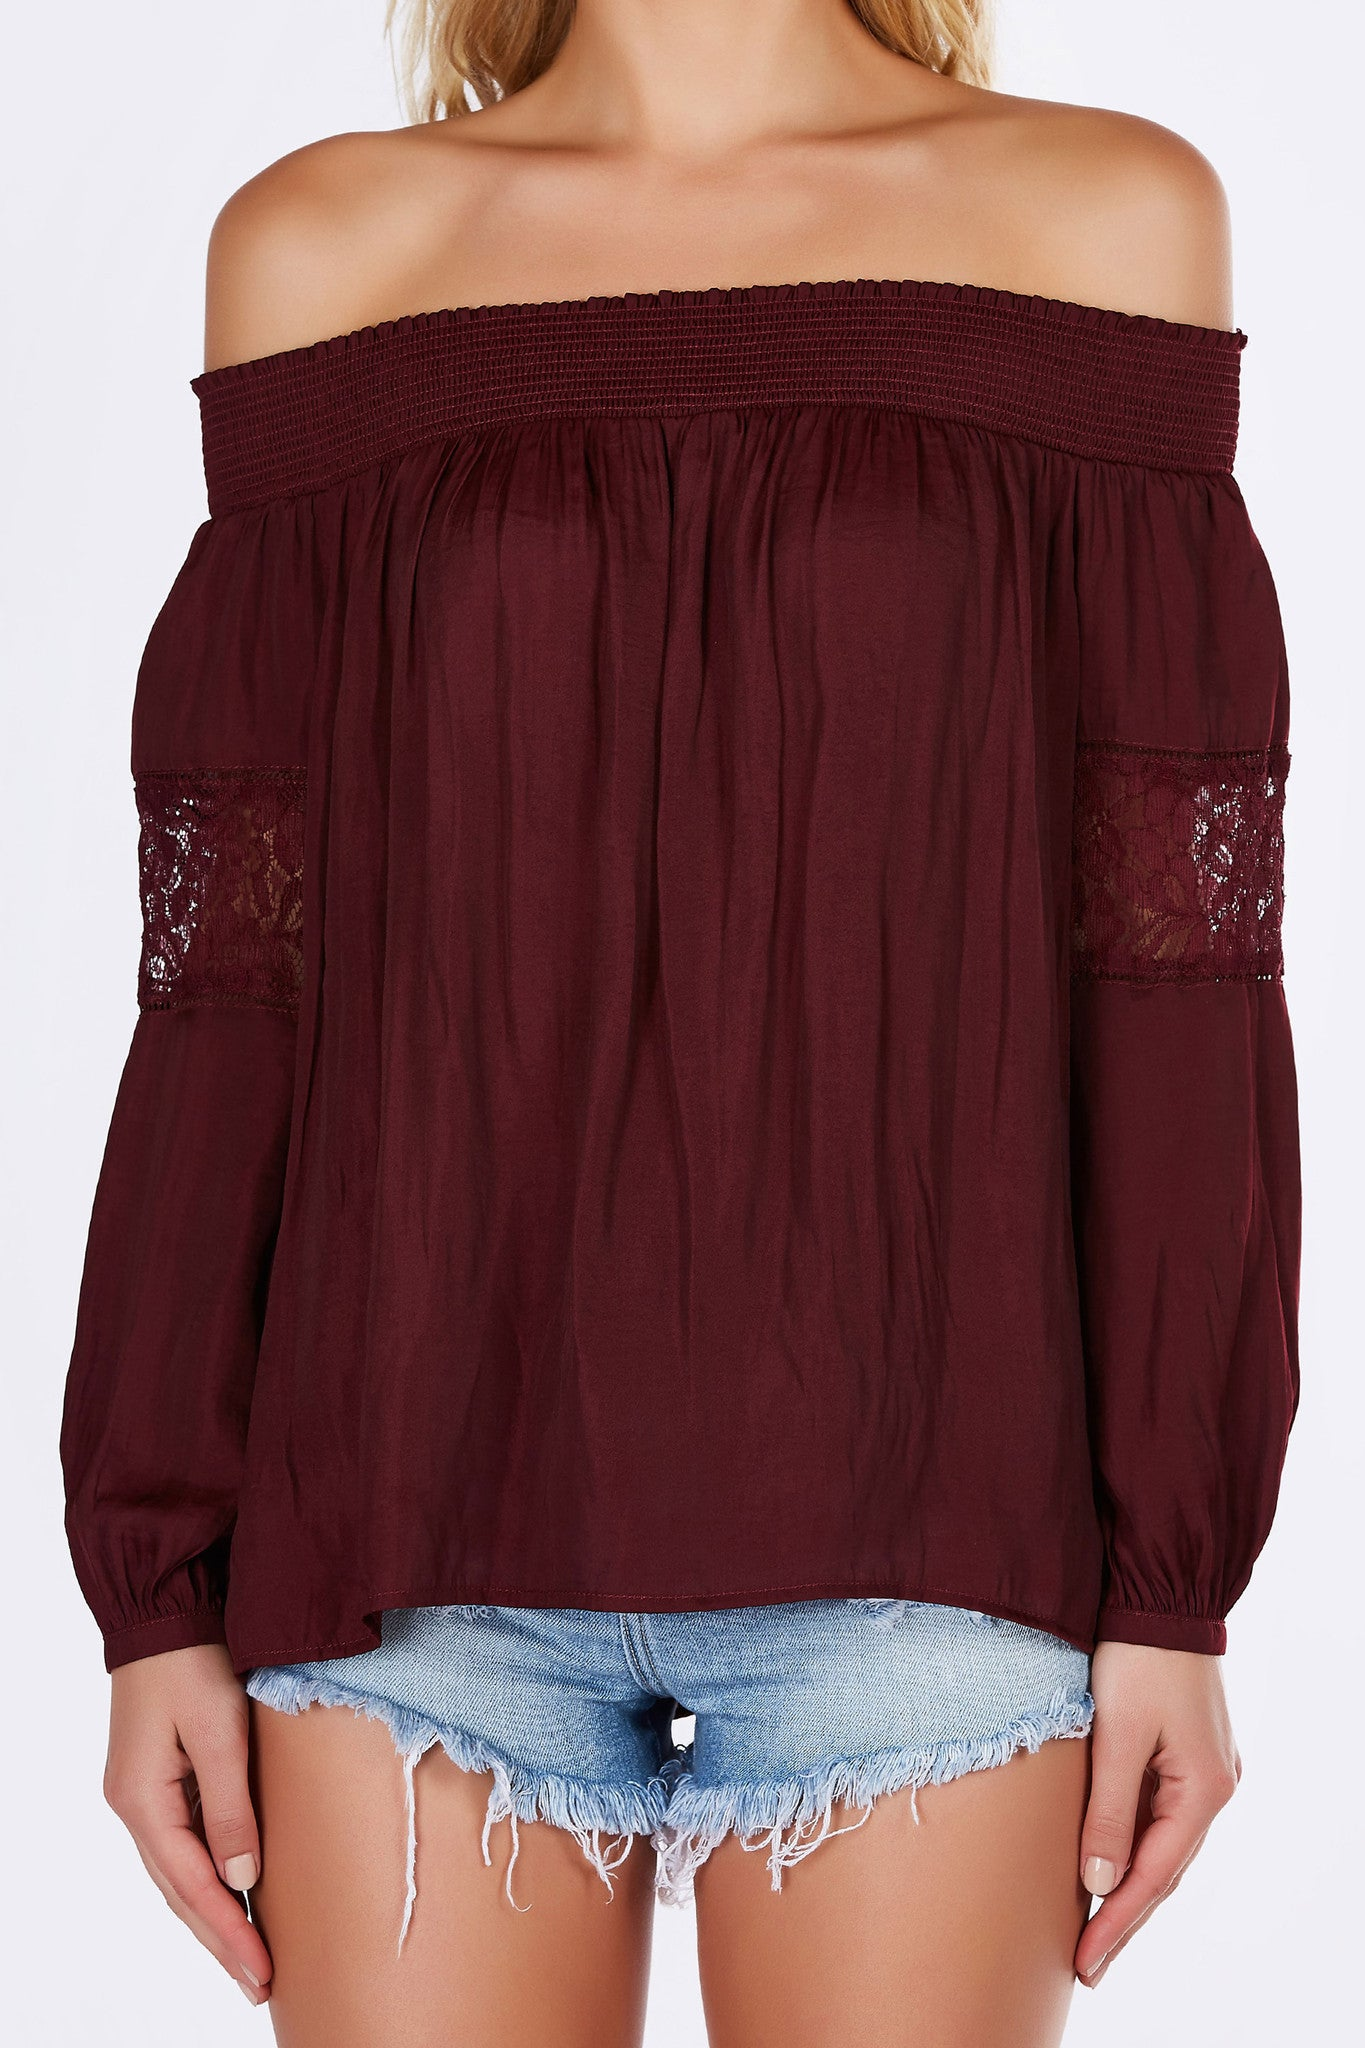 Silky smooth material, this off shoulder chiffon blouse is seductive yet elegant at the same time. Gorgeous contrast lace panels on each sleeves for a sultry twist. Flowy, feminine fit- great to pair with skinnies and ankle strap pumps.